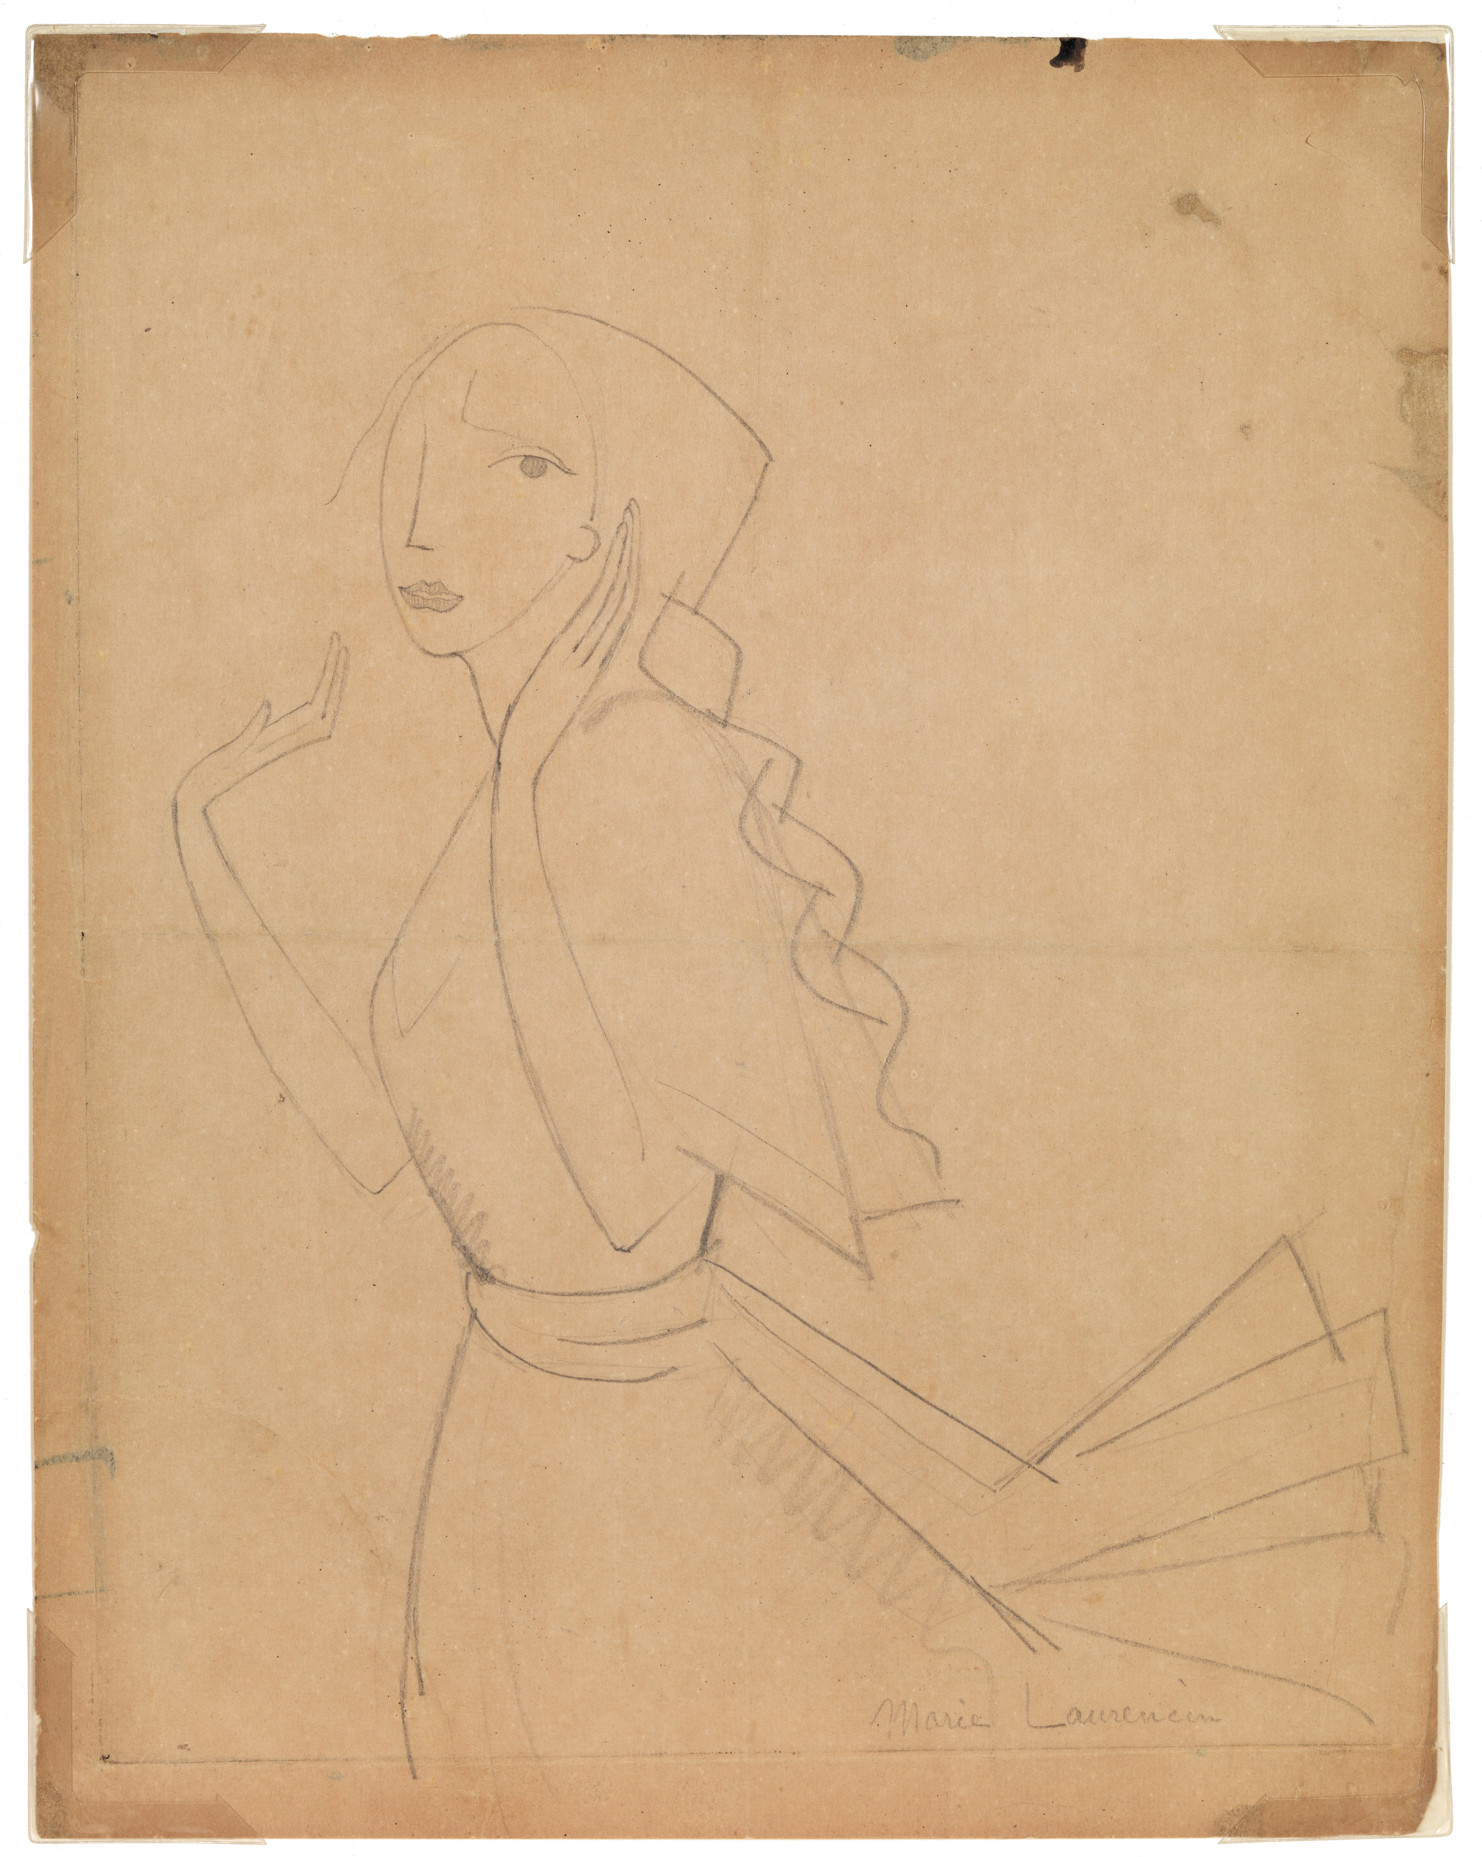 Marie Laurencin (French, 1885–1956) Étude Pour L'eau-Forte La Romance (Study for the Etching Romance), 1912. Pencil on paper, 9 1/2 x 7 3/8 in. Gift of Madeleine P. and Harvey R. Plonsker, Class of 1961, M.2015.25.6